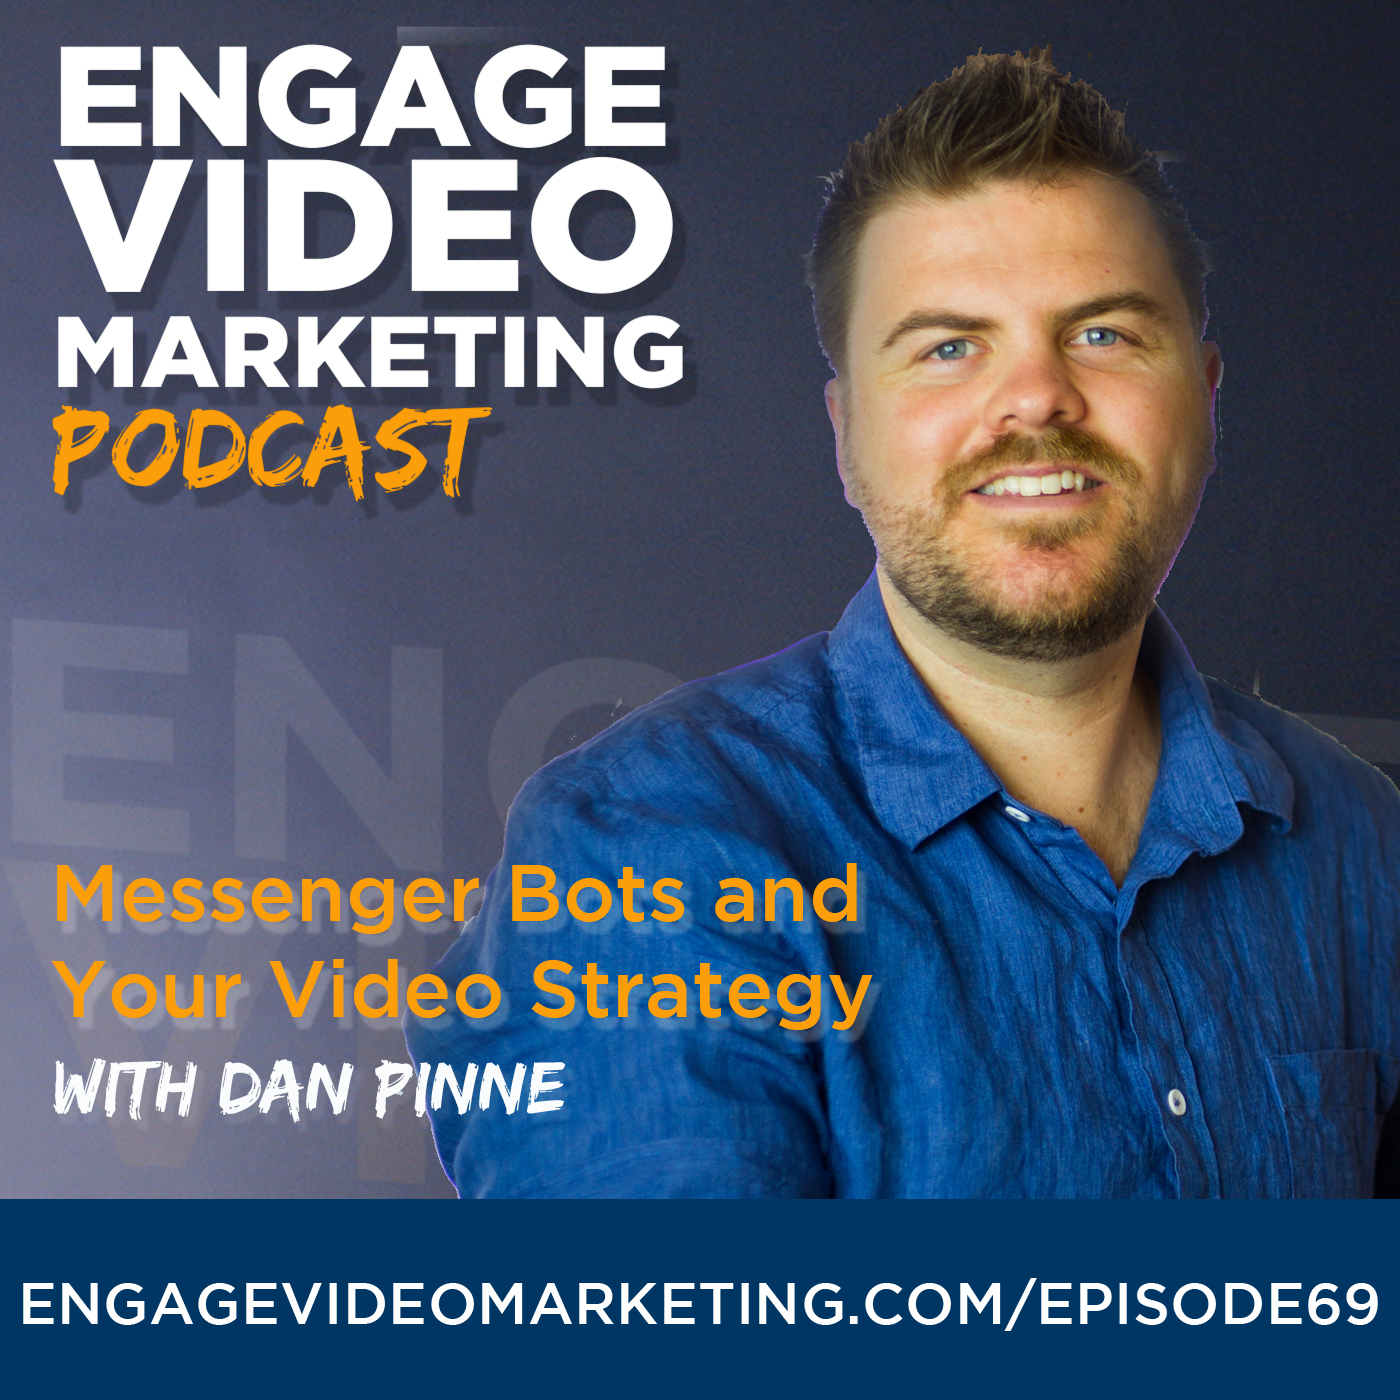 Messenger Bots and Your Video Strategy with Dan Pinne